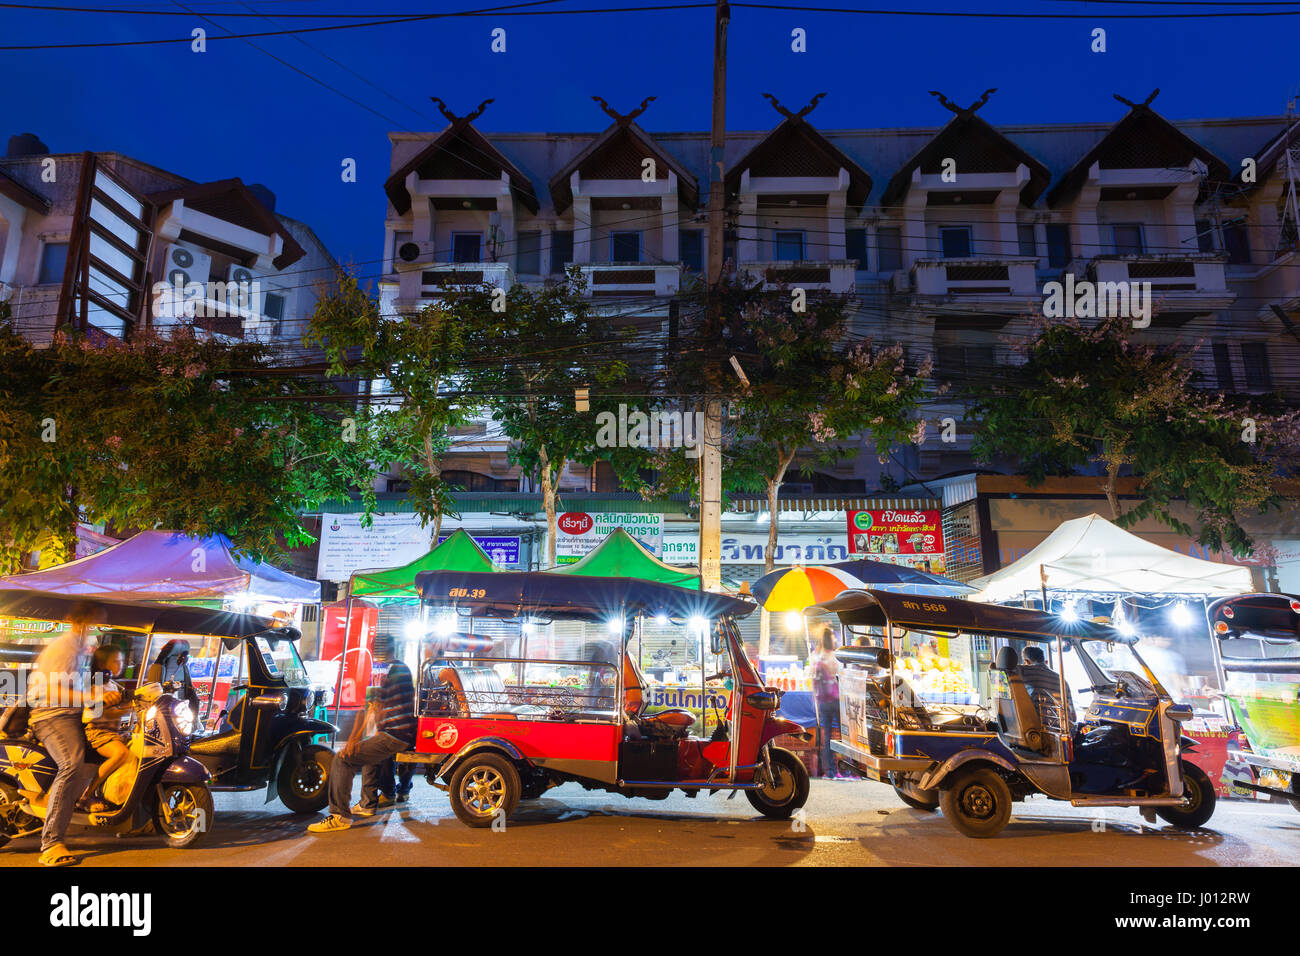 Chiang Mai, Thailand - August 21, 2016: Tuk-tuk taxis wait for customers near Saturday Night Market on August 21, - Stock Image